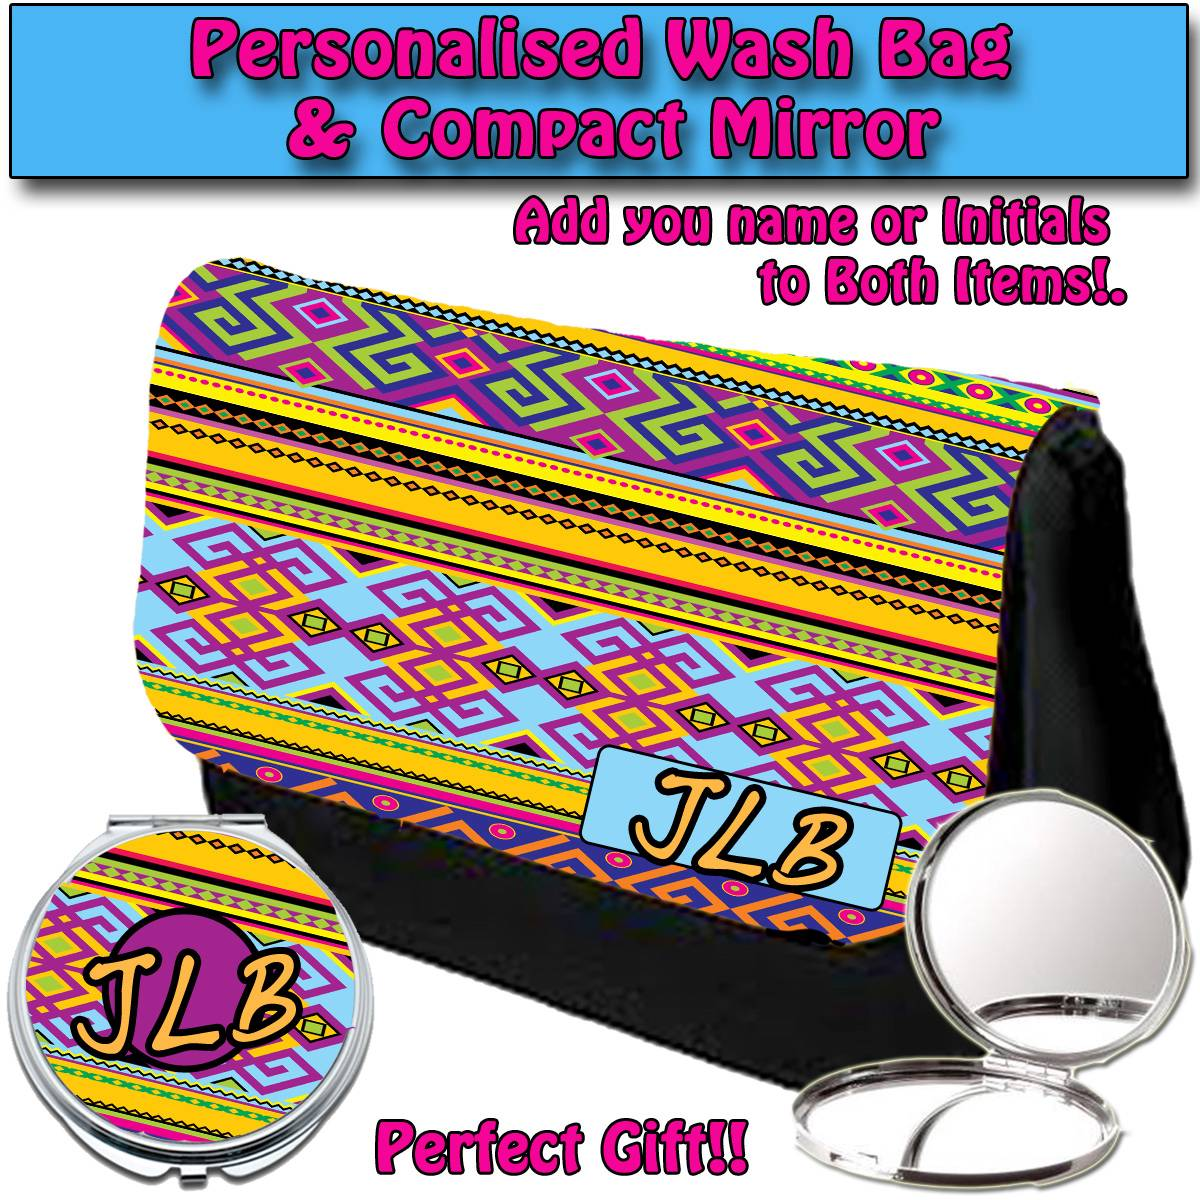 PERSONALISED-WOMENS-AZTEC-3-MAKE-UP-BAG-COMPACT-MIRROR-LADIES-GIFT-034